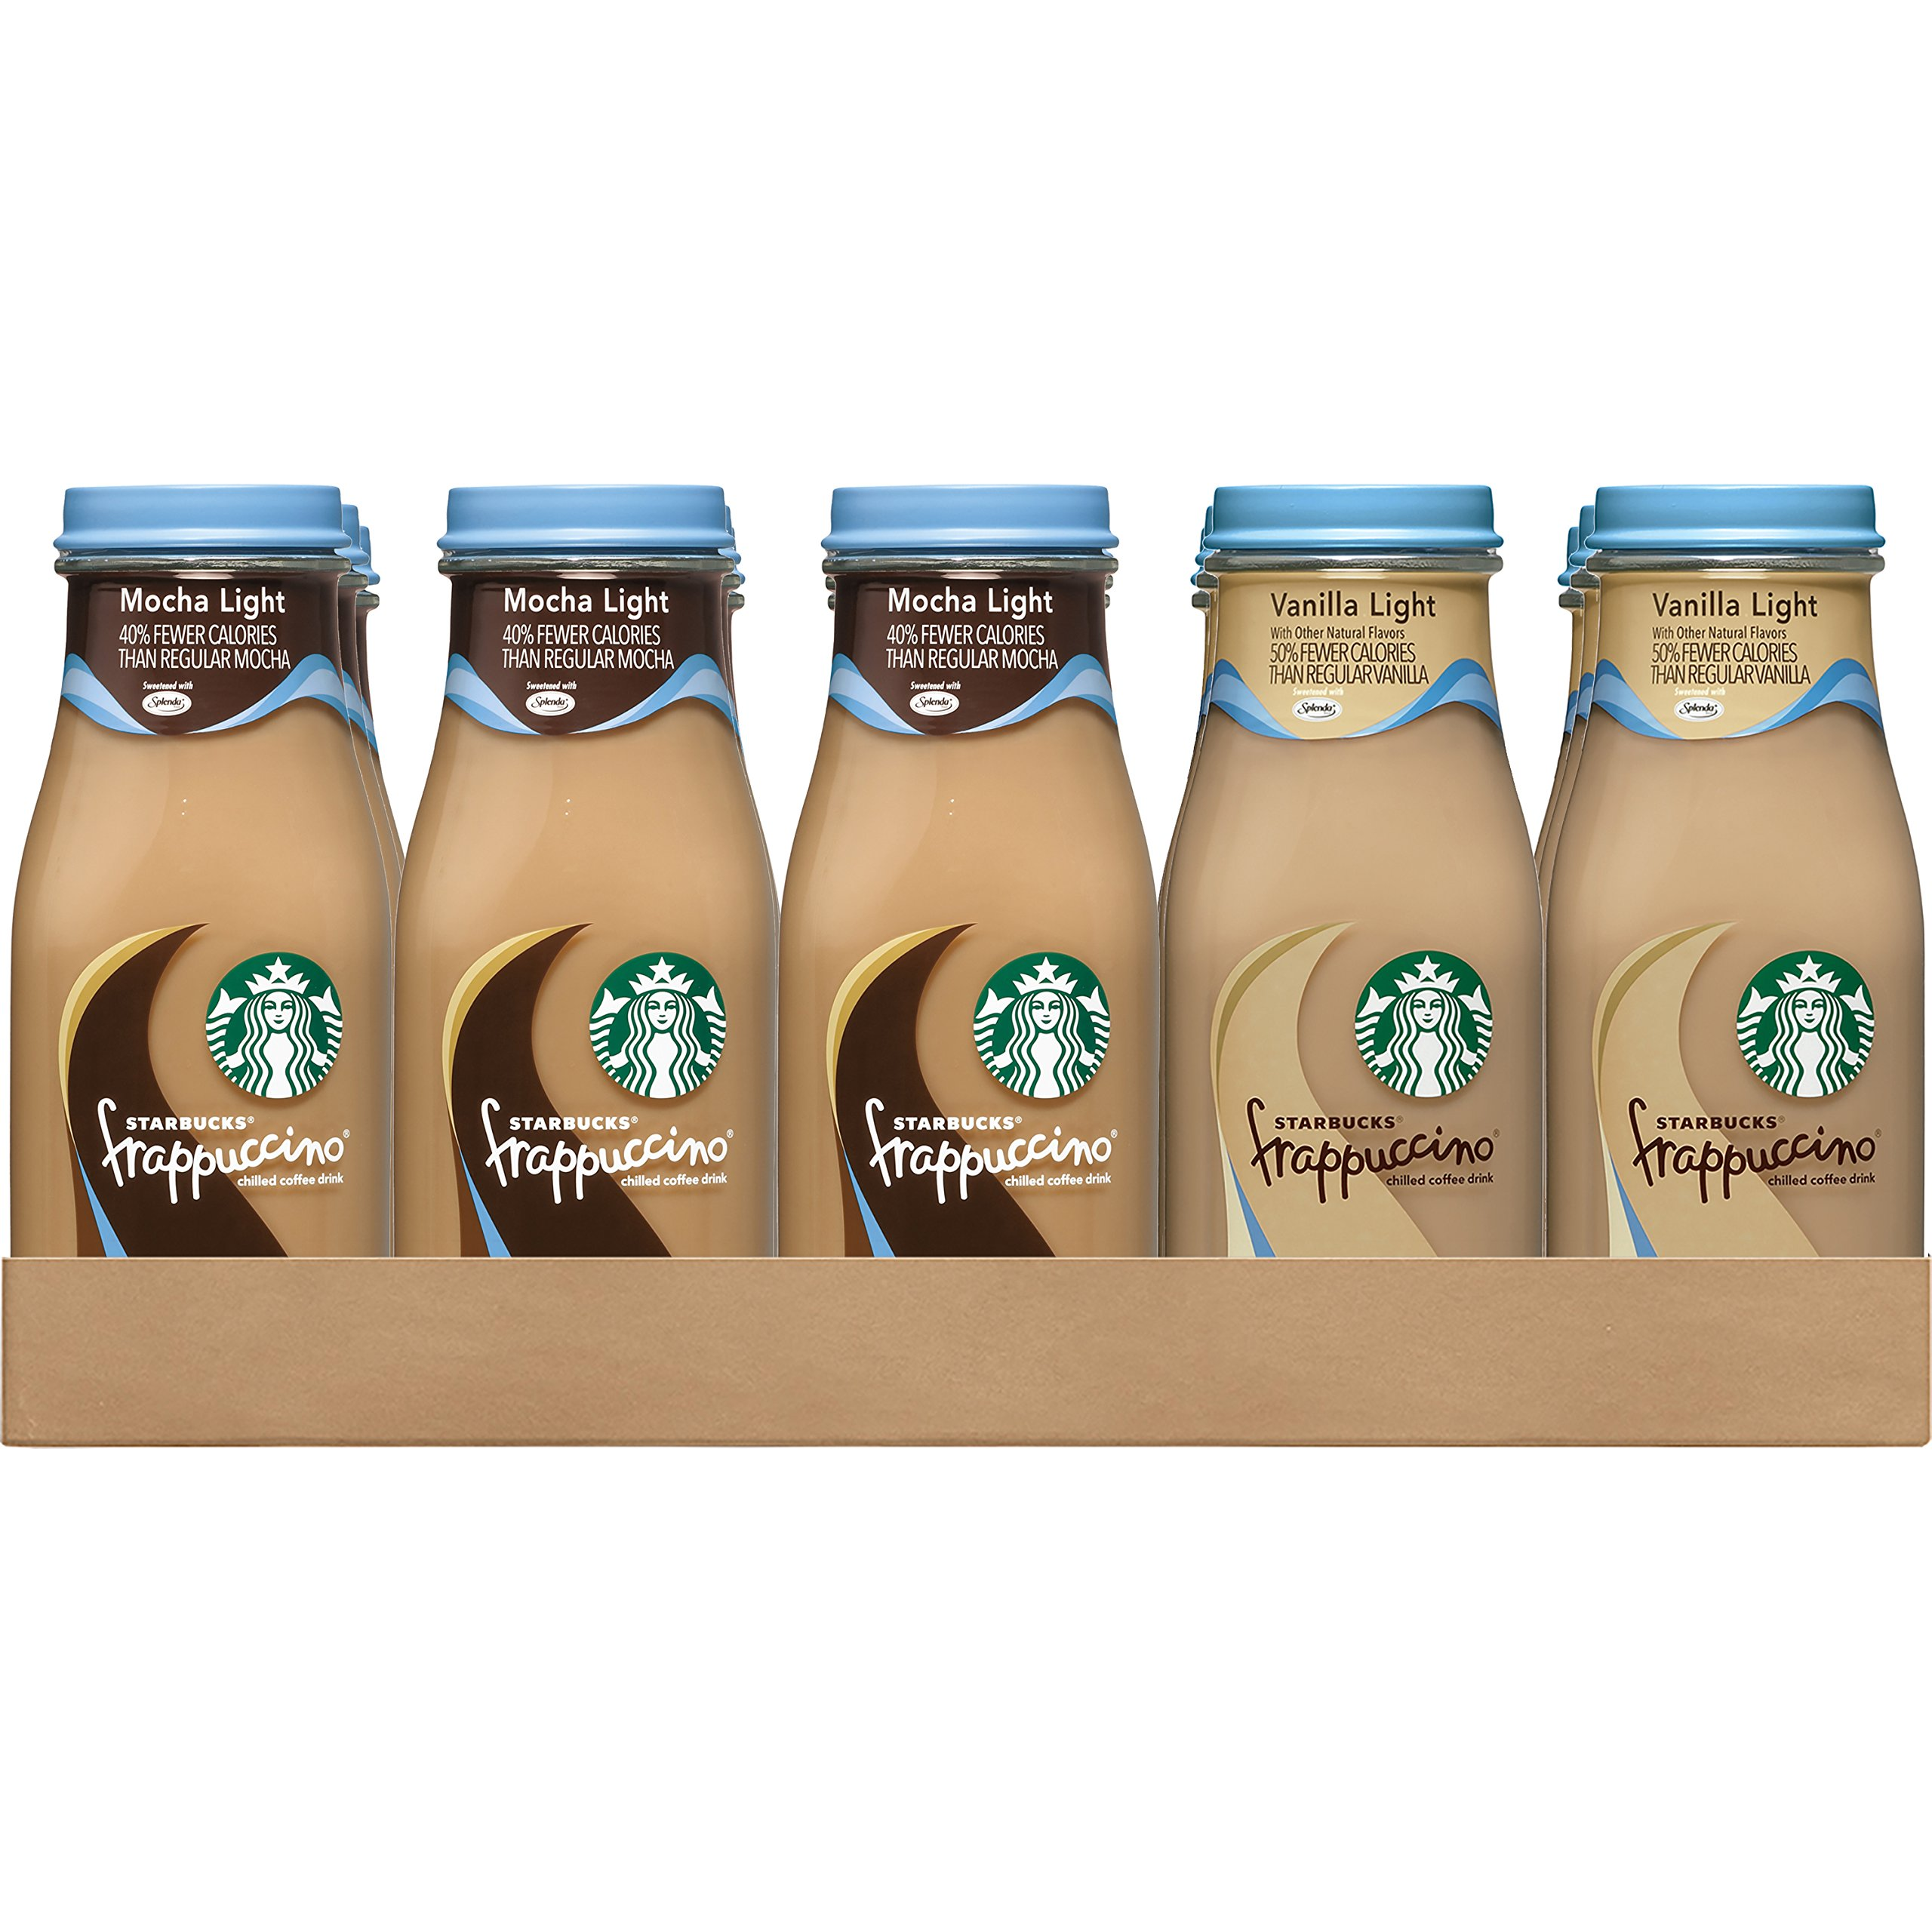 Starbucks Frappuccino, Mocha Light and Vanilla Light Flavors Variety Pack, 9.5 Ounce Glass Bottles, 15 Count by Starbucks